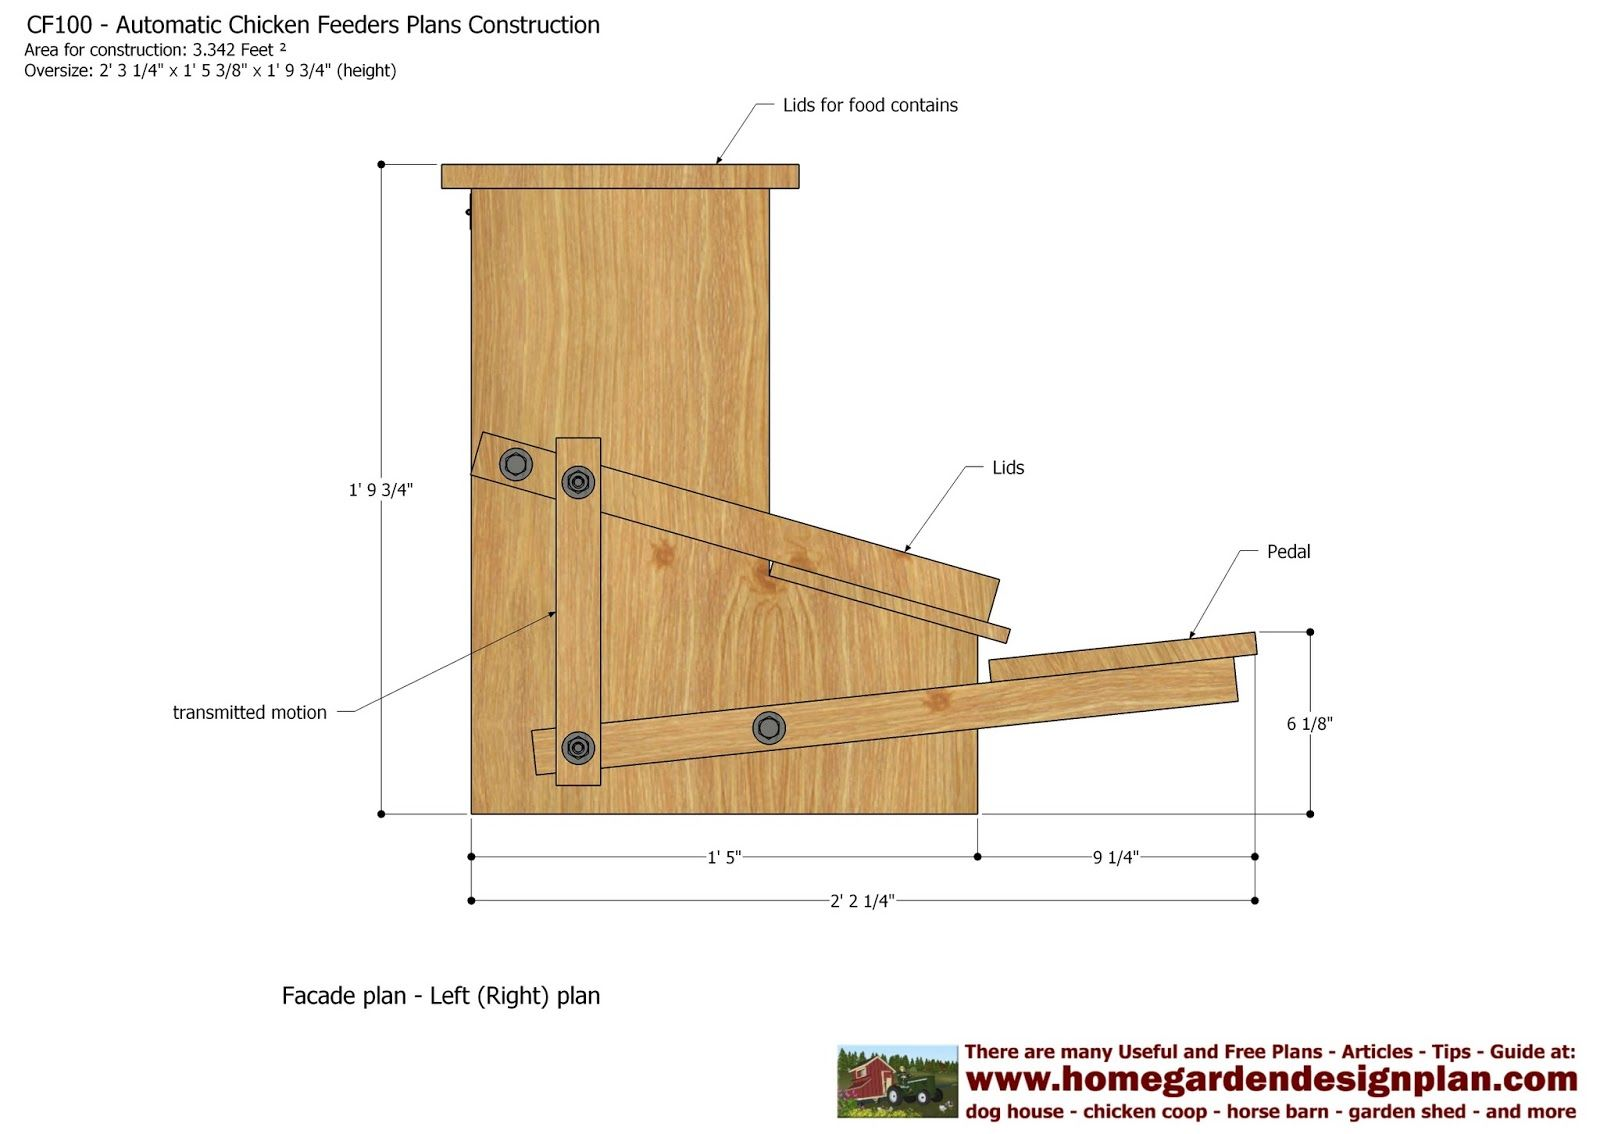 Cf100 Automatic Chicken Feeder Plans Construction How To Build A Chicken Feeders Mangeoire Poule Poulailler Nichoir